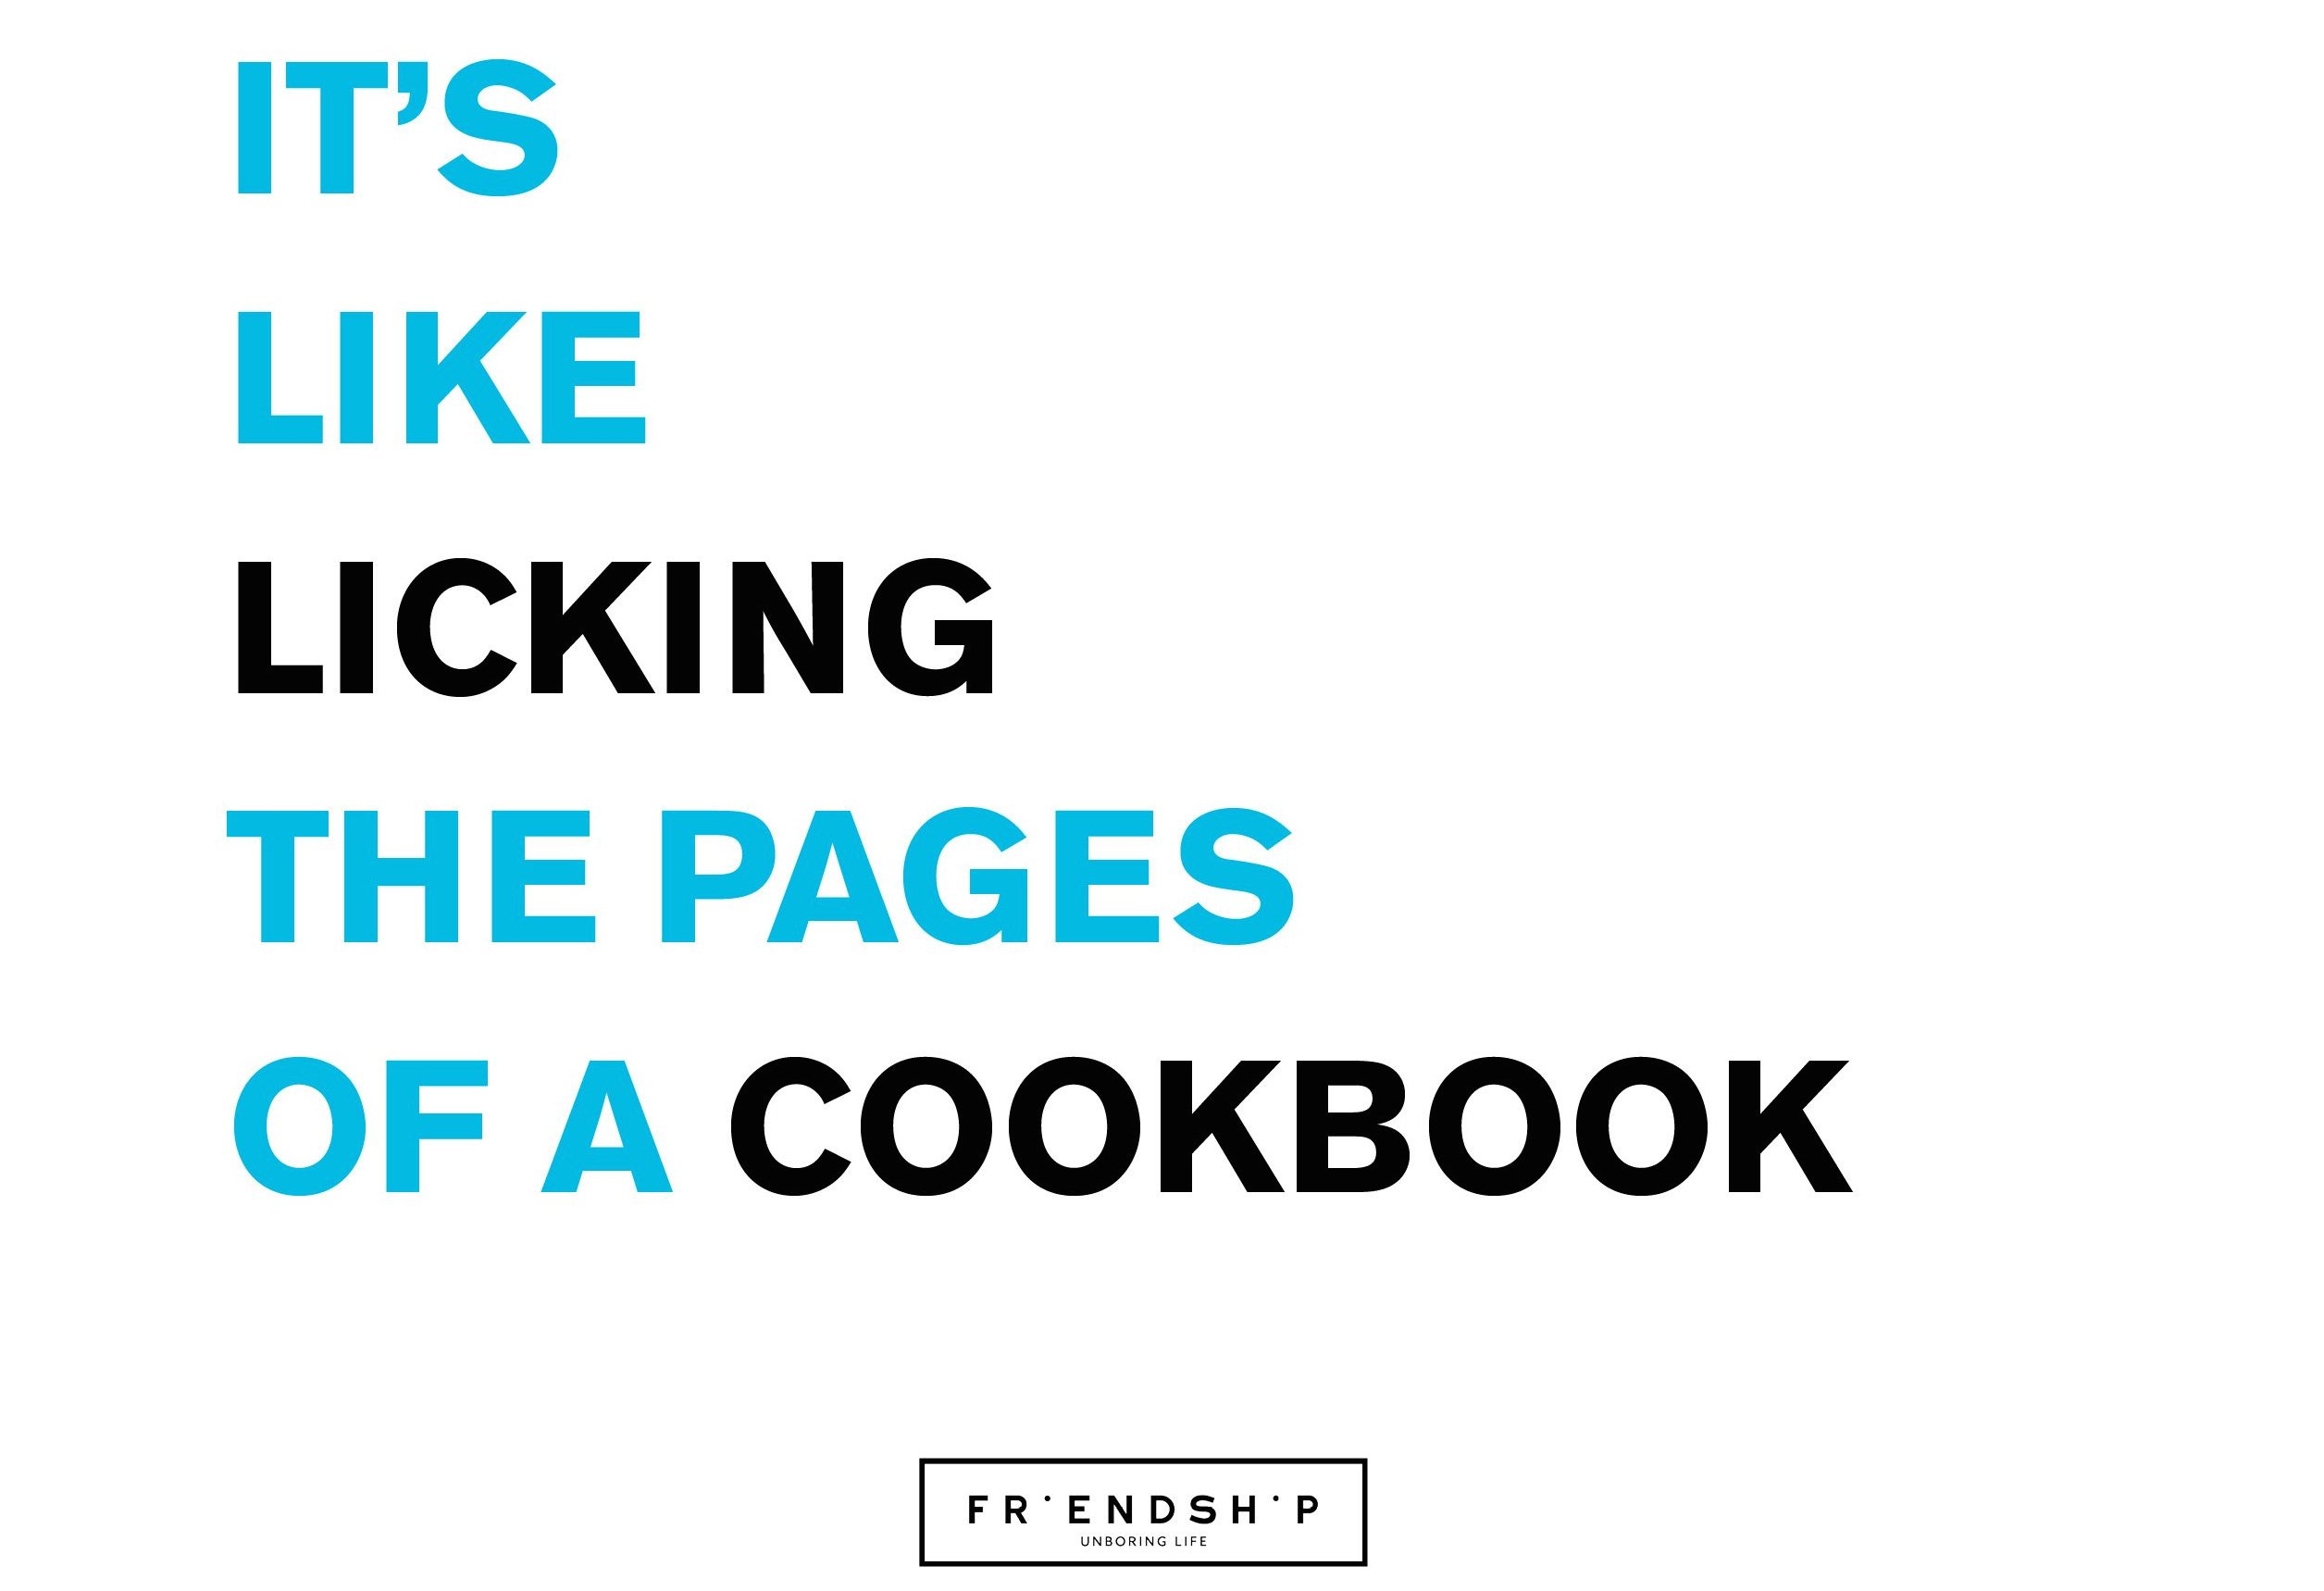 its-like-licking-the-pages-of-a-cookbook